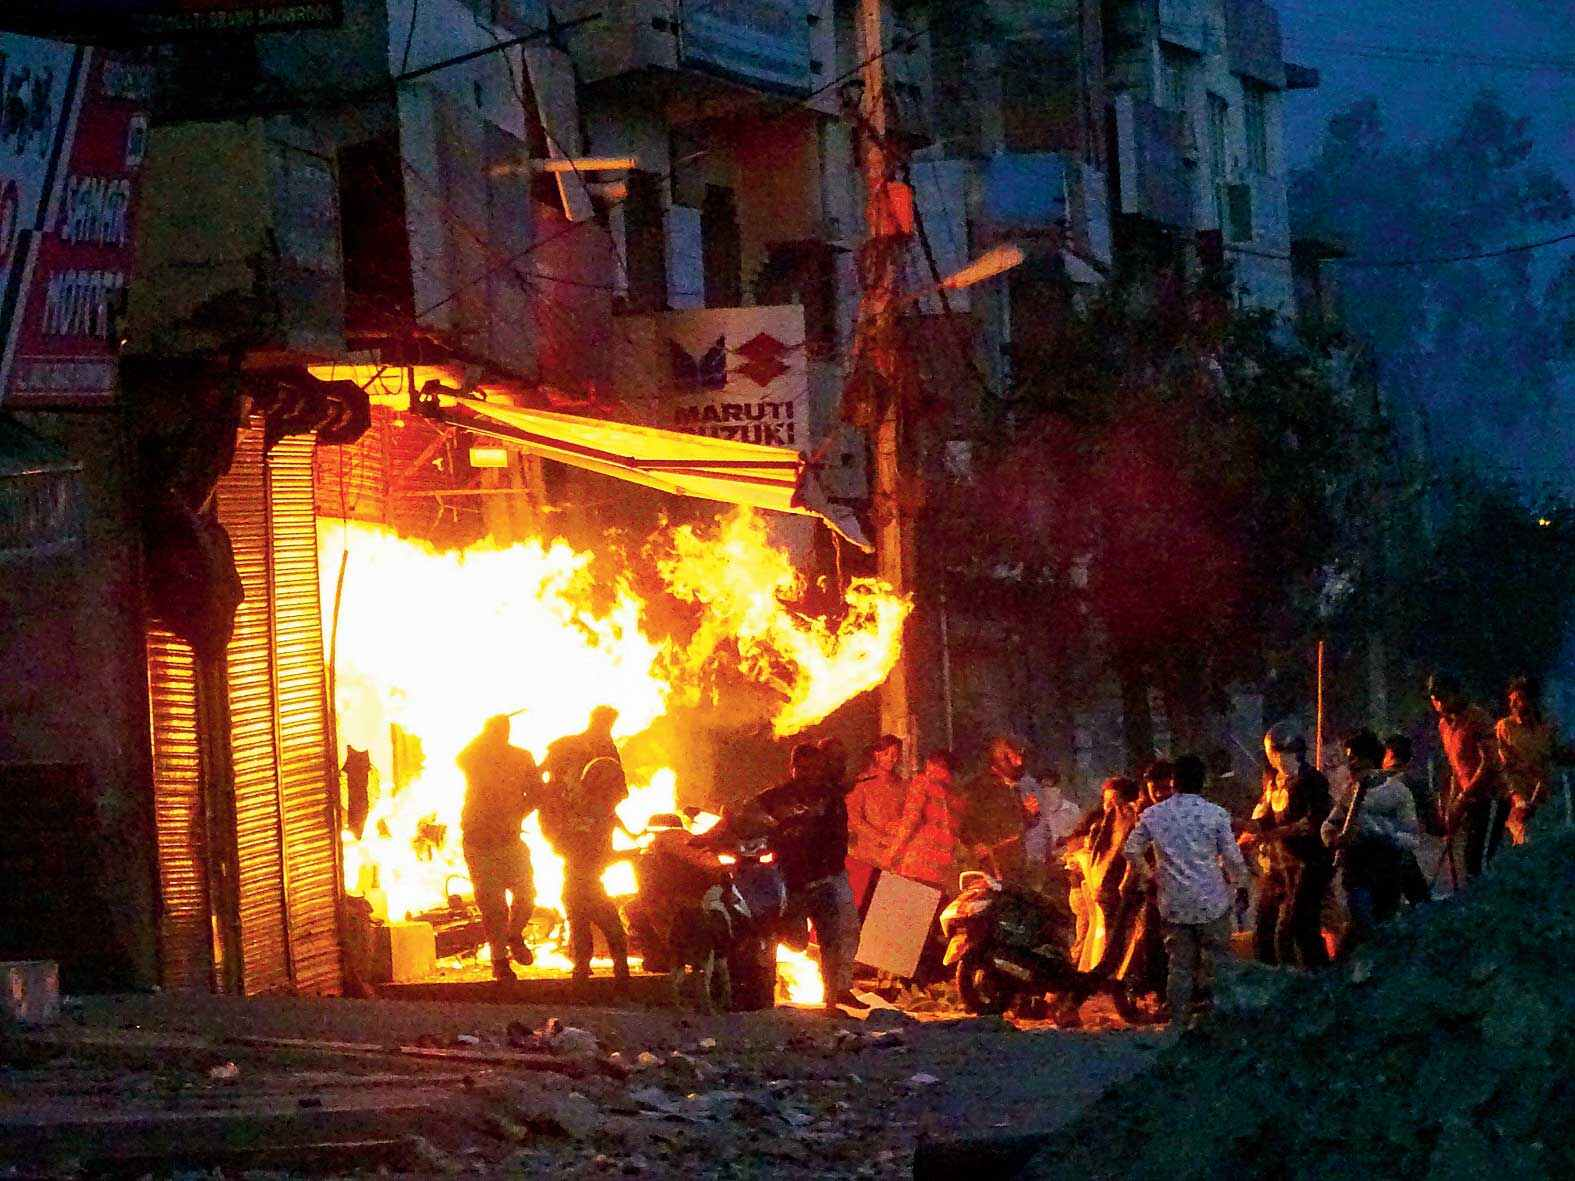 Rioters set ablaze a shop in northeast Delhi. Chhatra RJD unit of JNU had demanded the release of Meeran Haider and said the police should become ''people-friendly'' and not scare people.